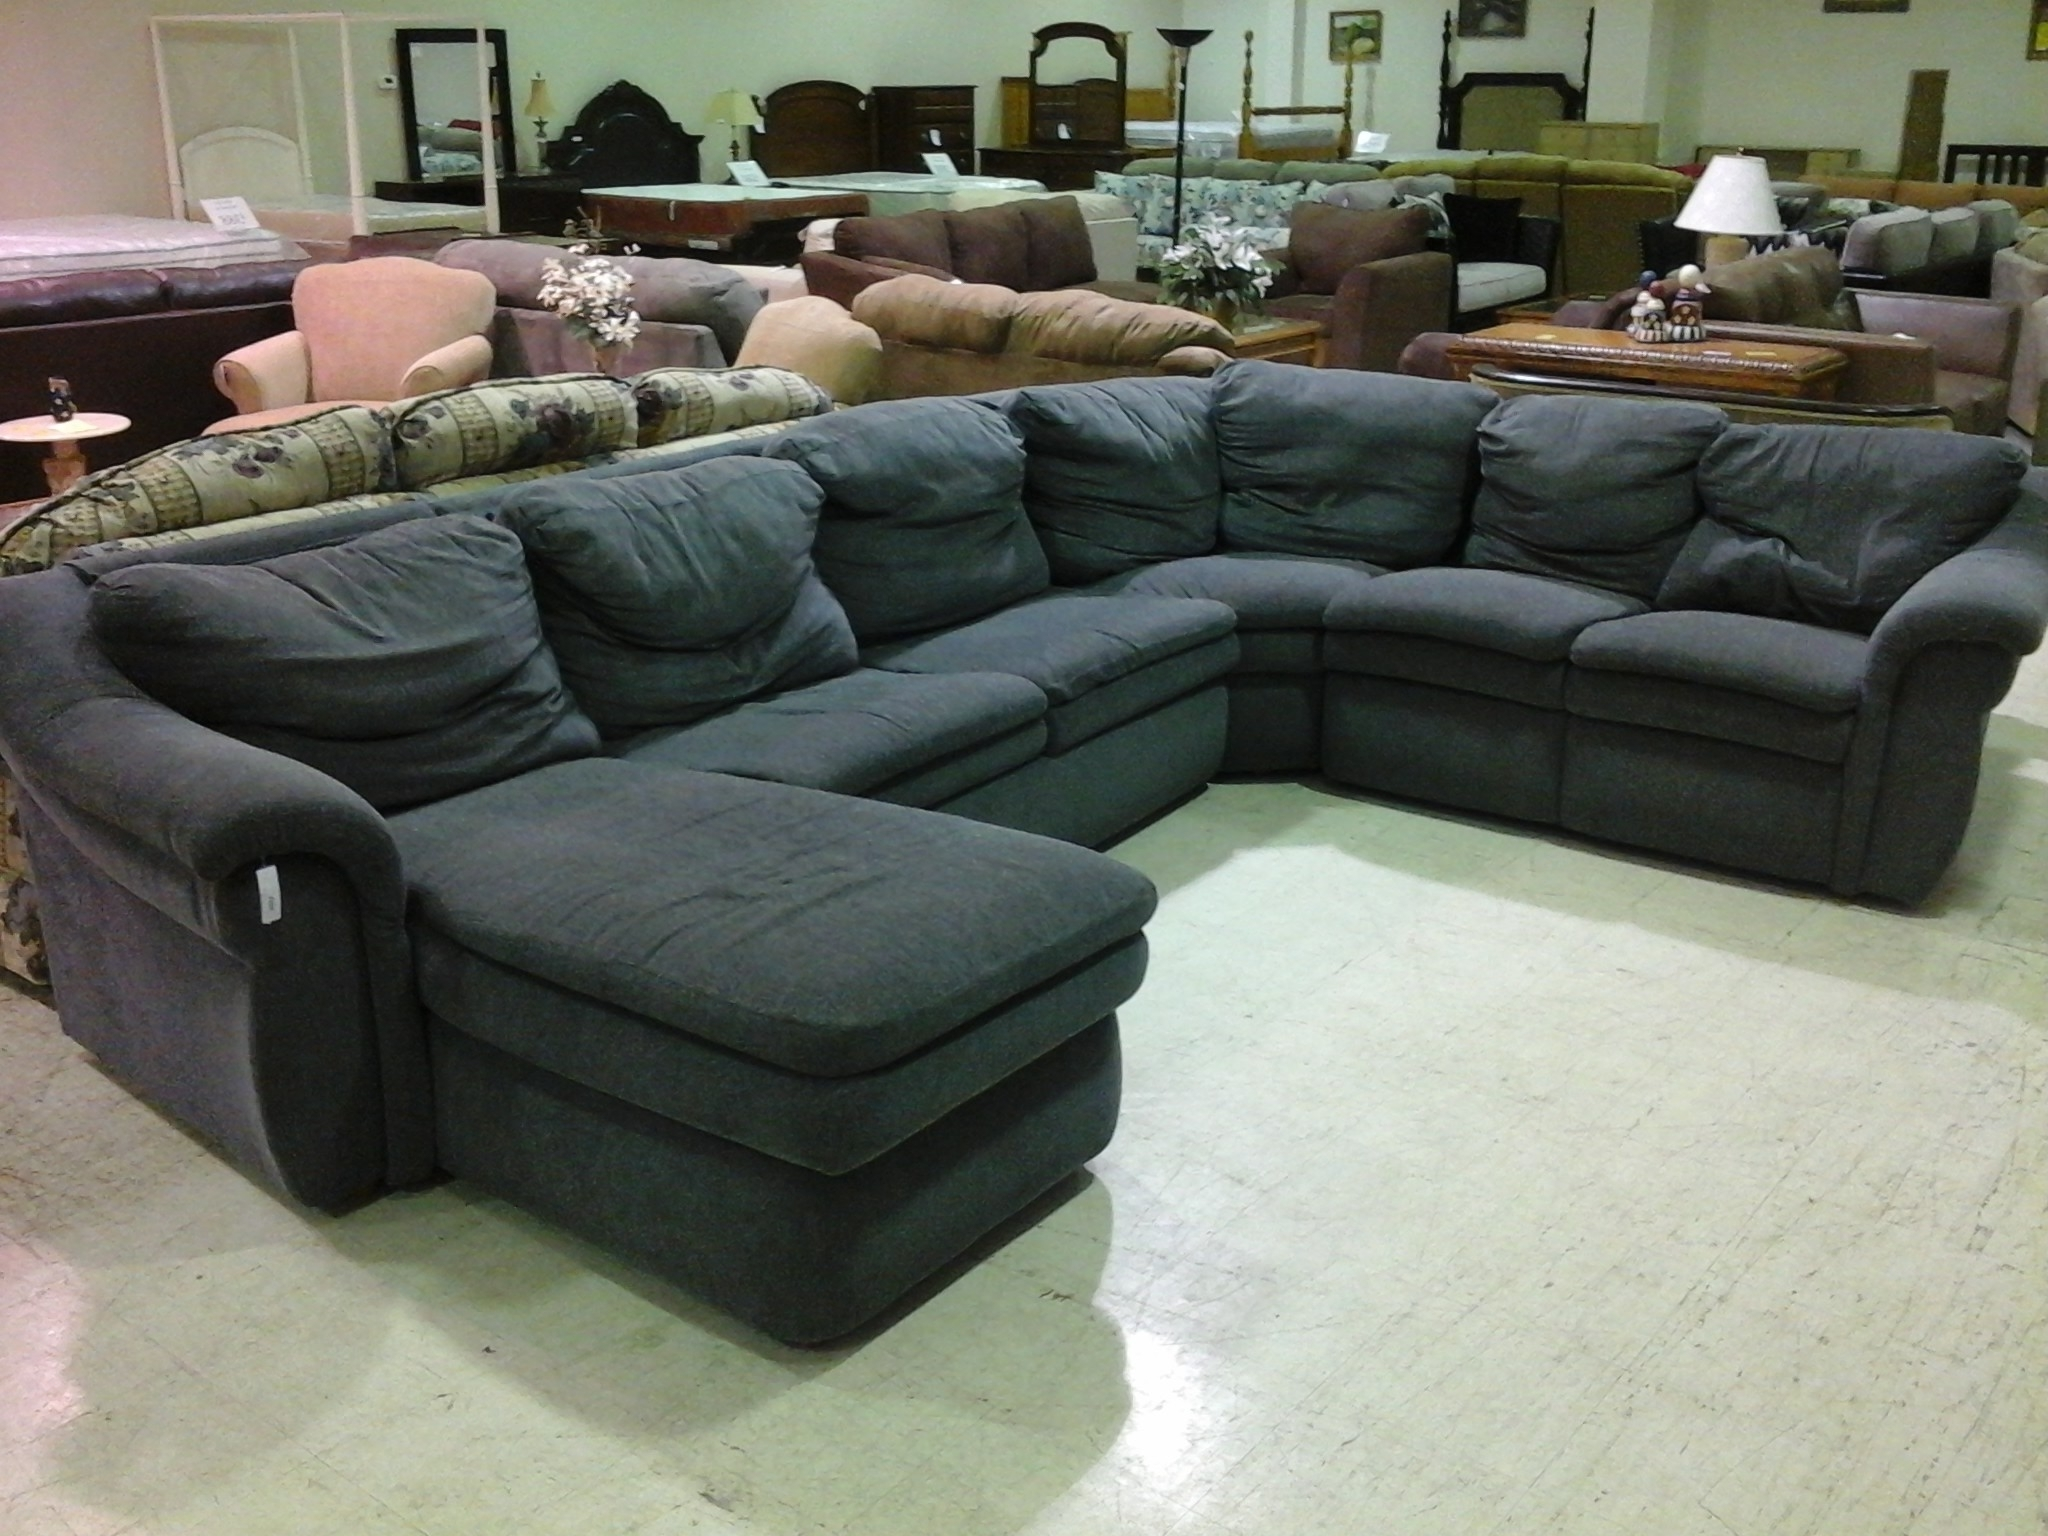 Used Sectional Sofas In Favorite Luxury Used Sectional Sofa With Sleeper – Buildsimplehome (View 10 of 15)